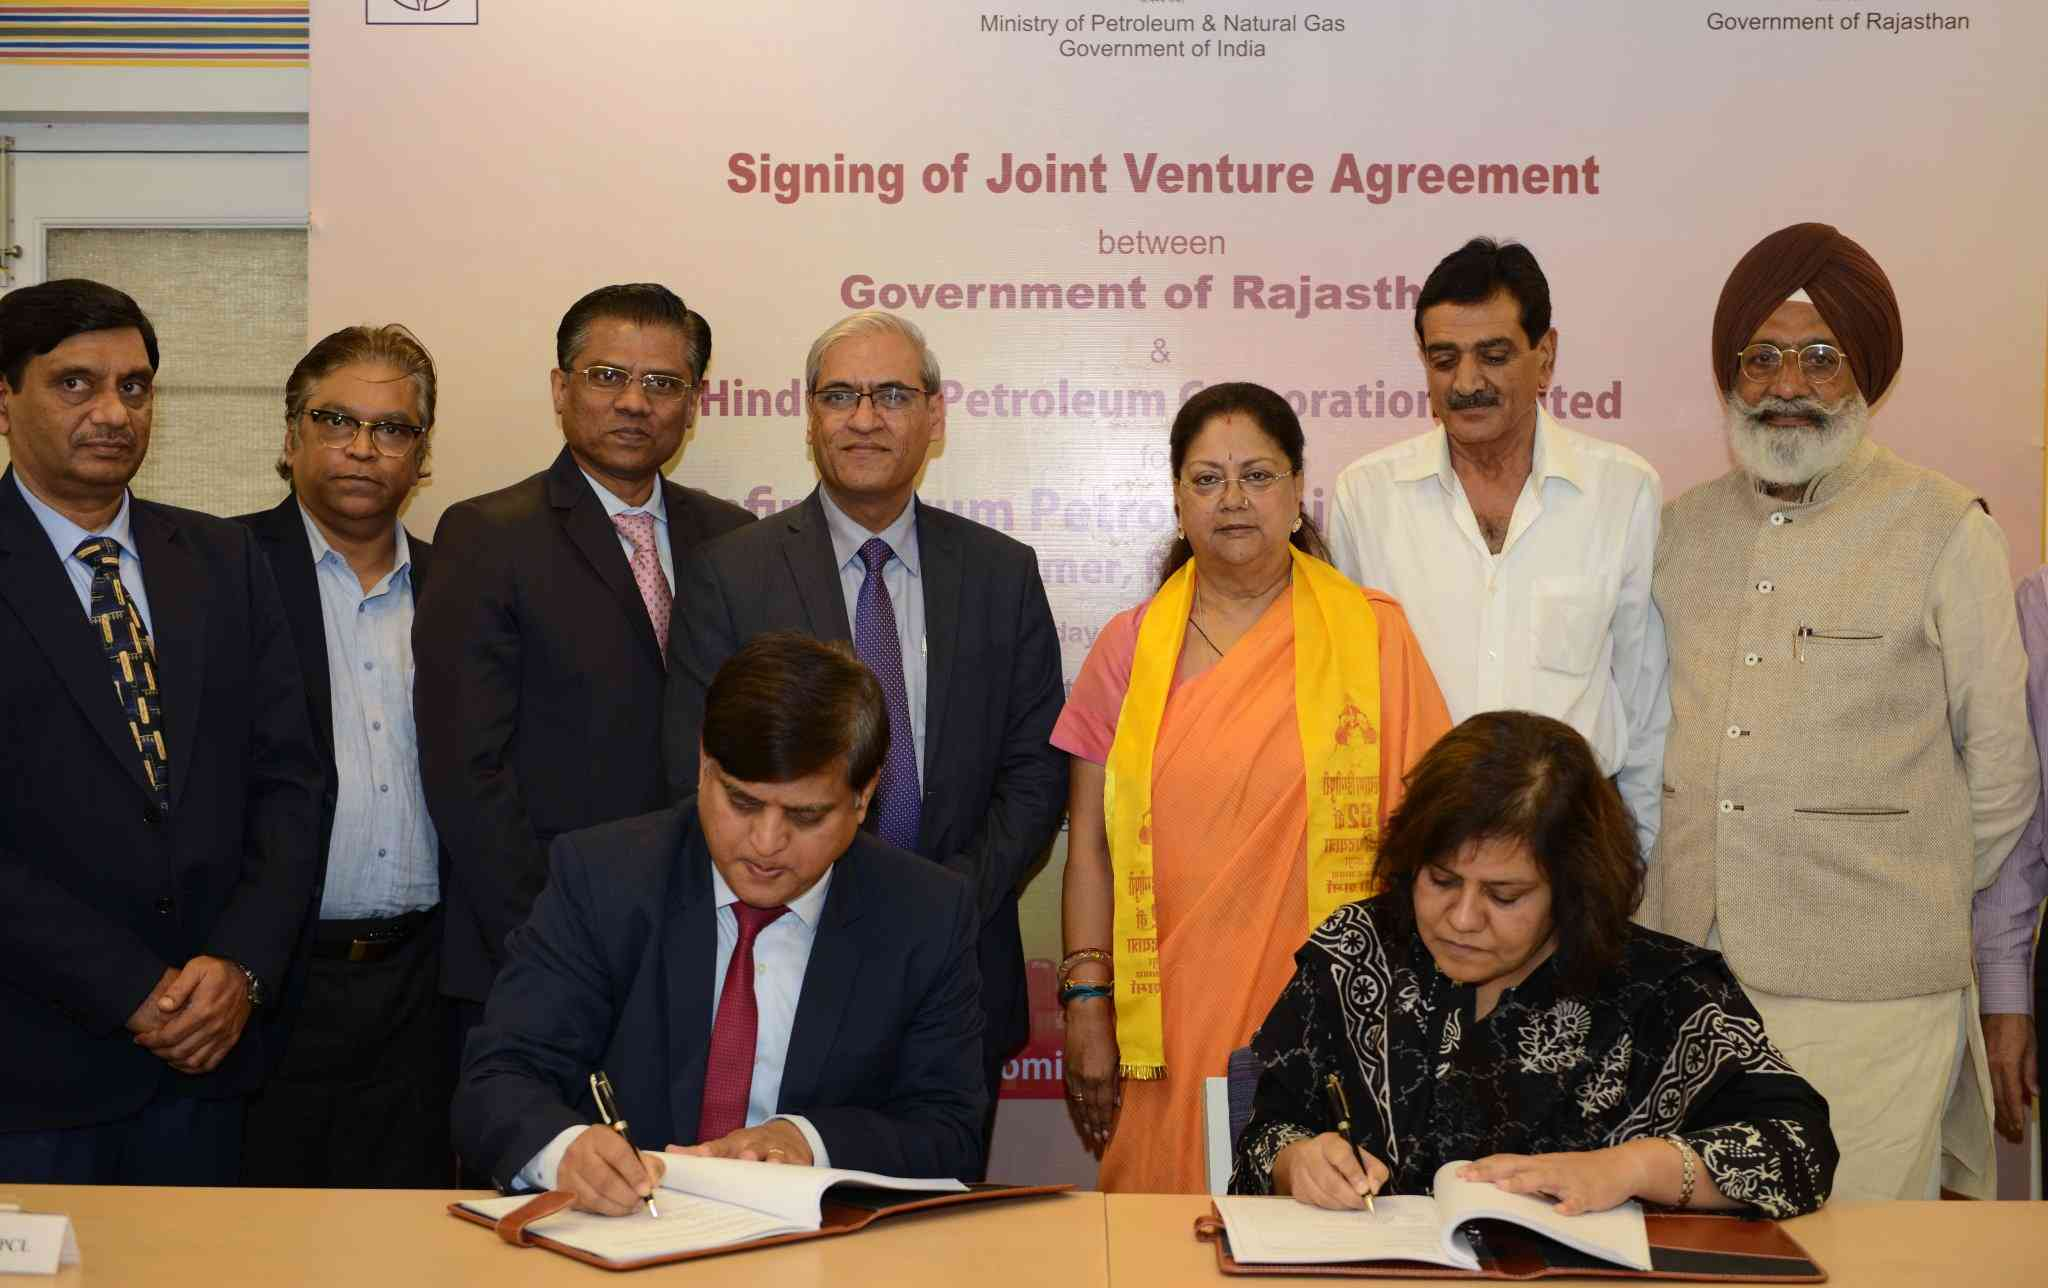 #BarmerRefinery #MOU #JointVenture #HPCL #RajasthanGovernment